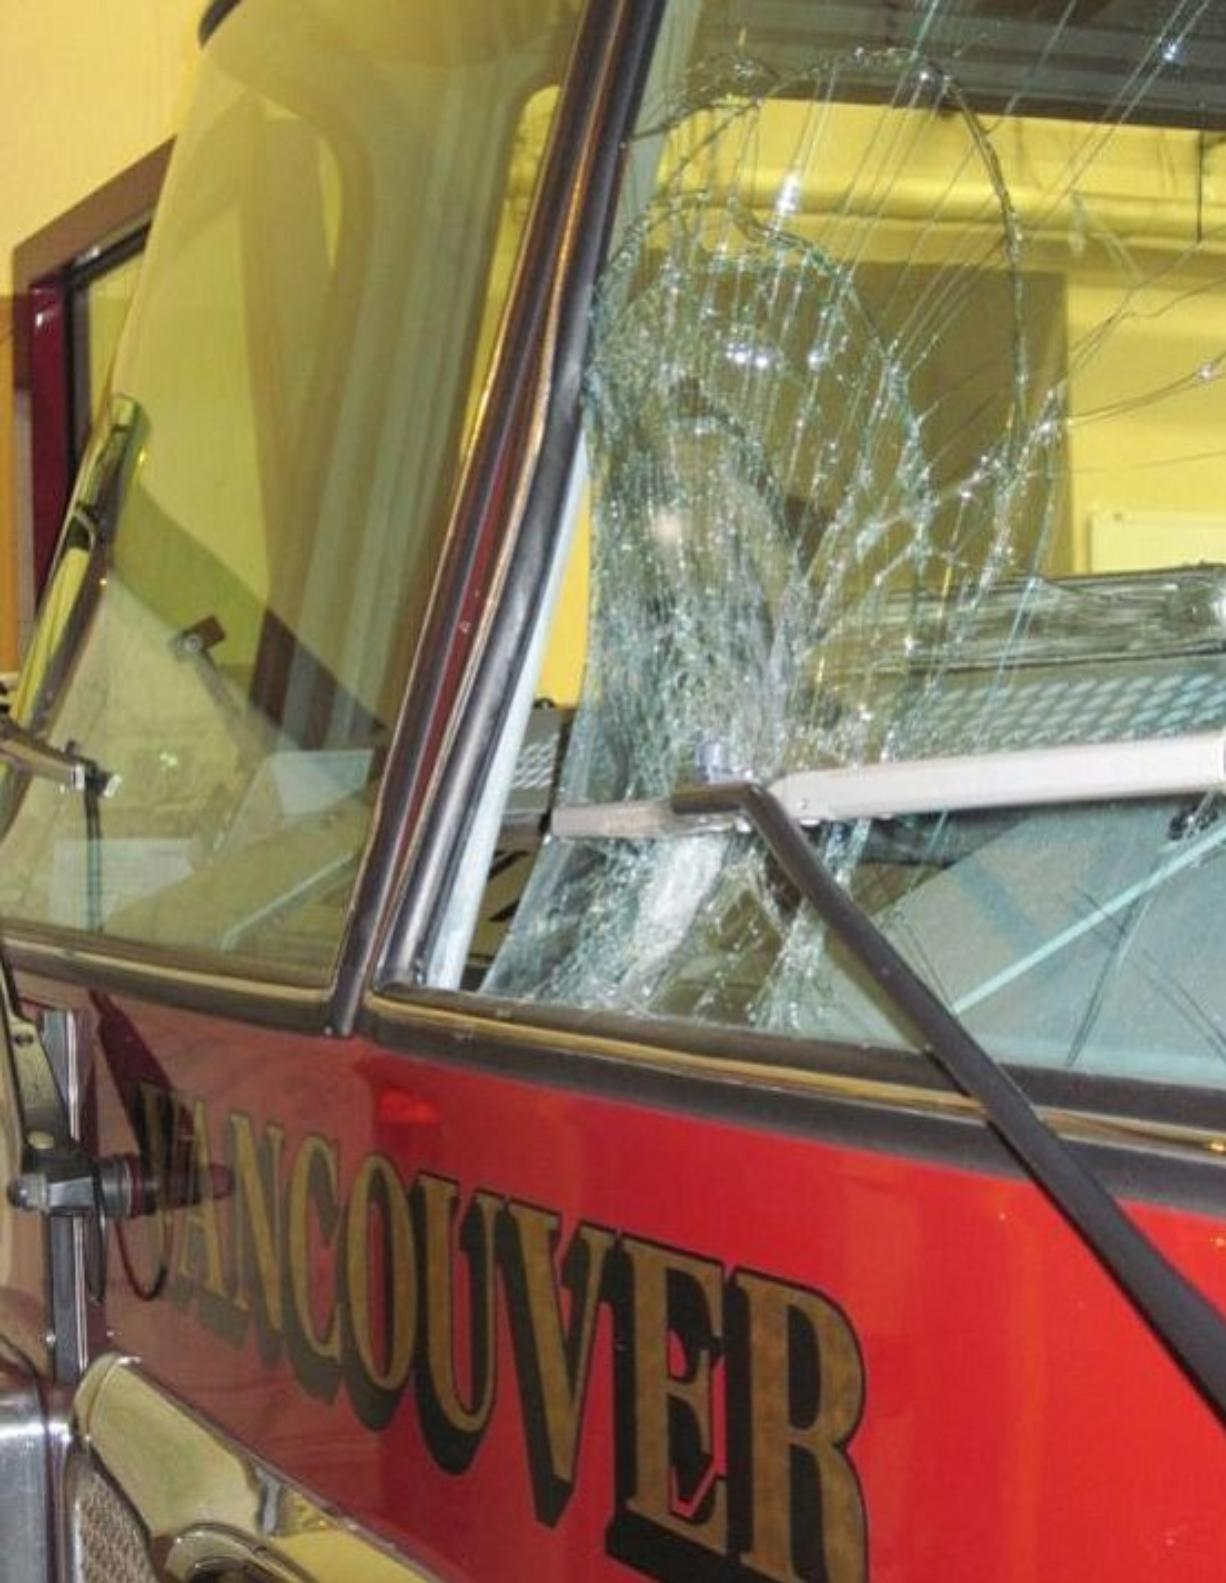 Shane Parker/Vancouver Fire Department A large rock caved in part of the windshield of one of the Vancouver Fire Department's ladder trucks early Saturday.